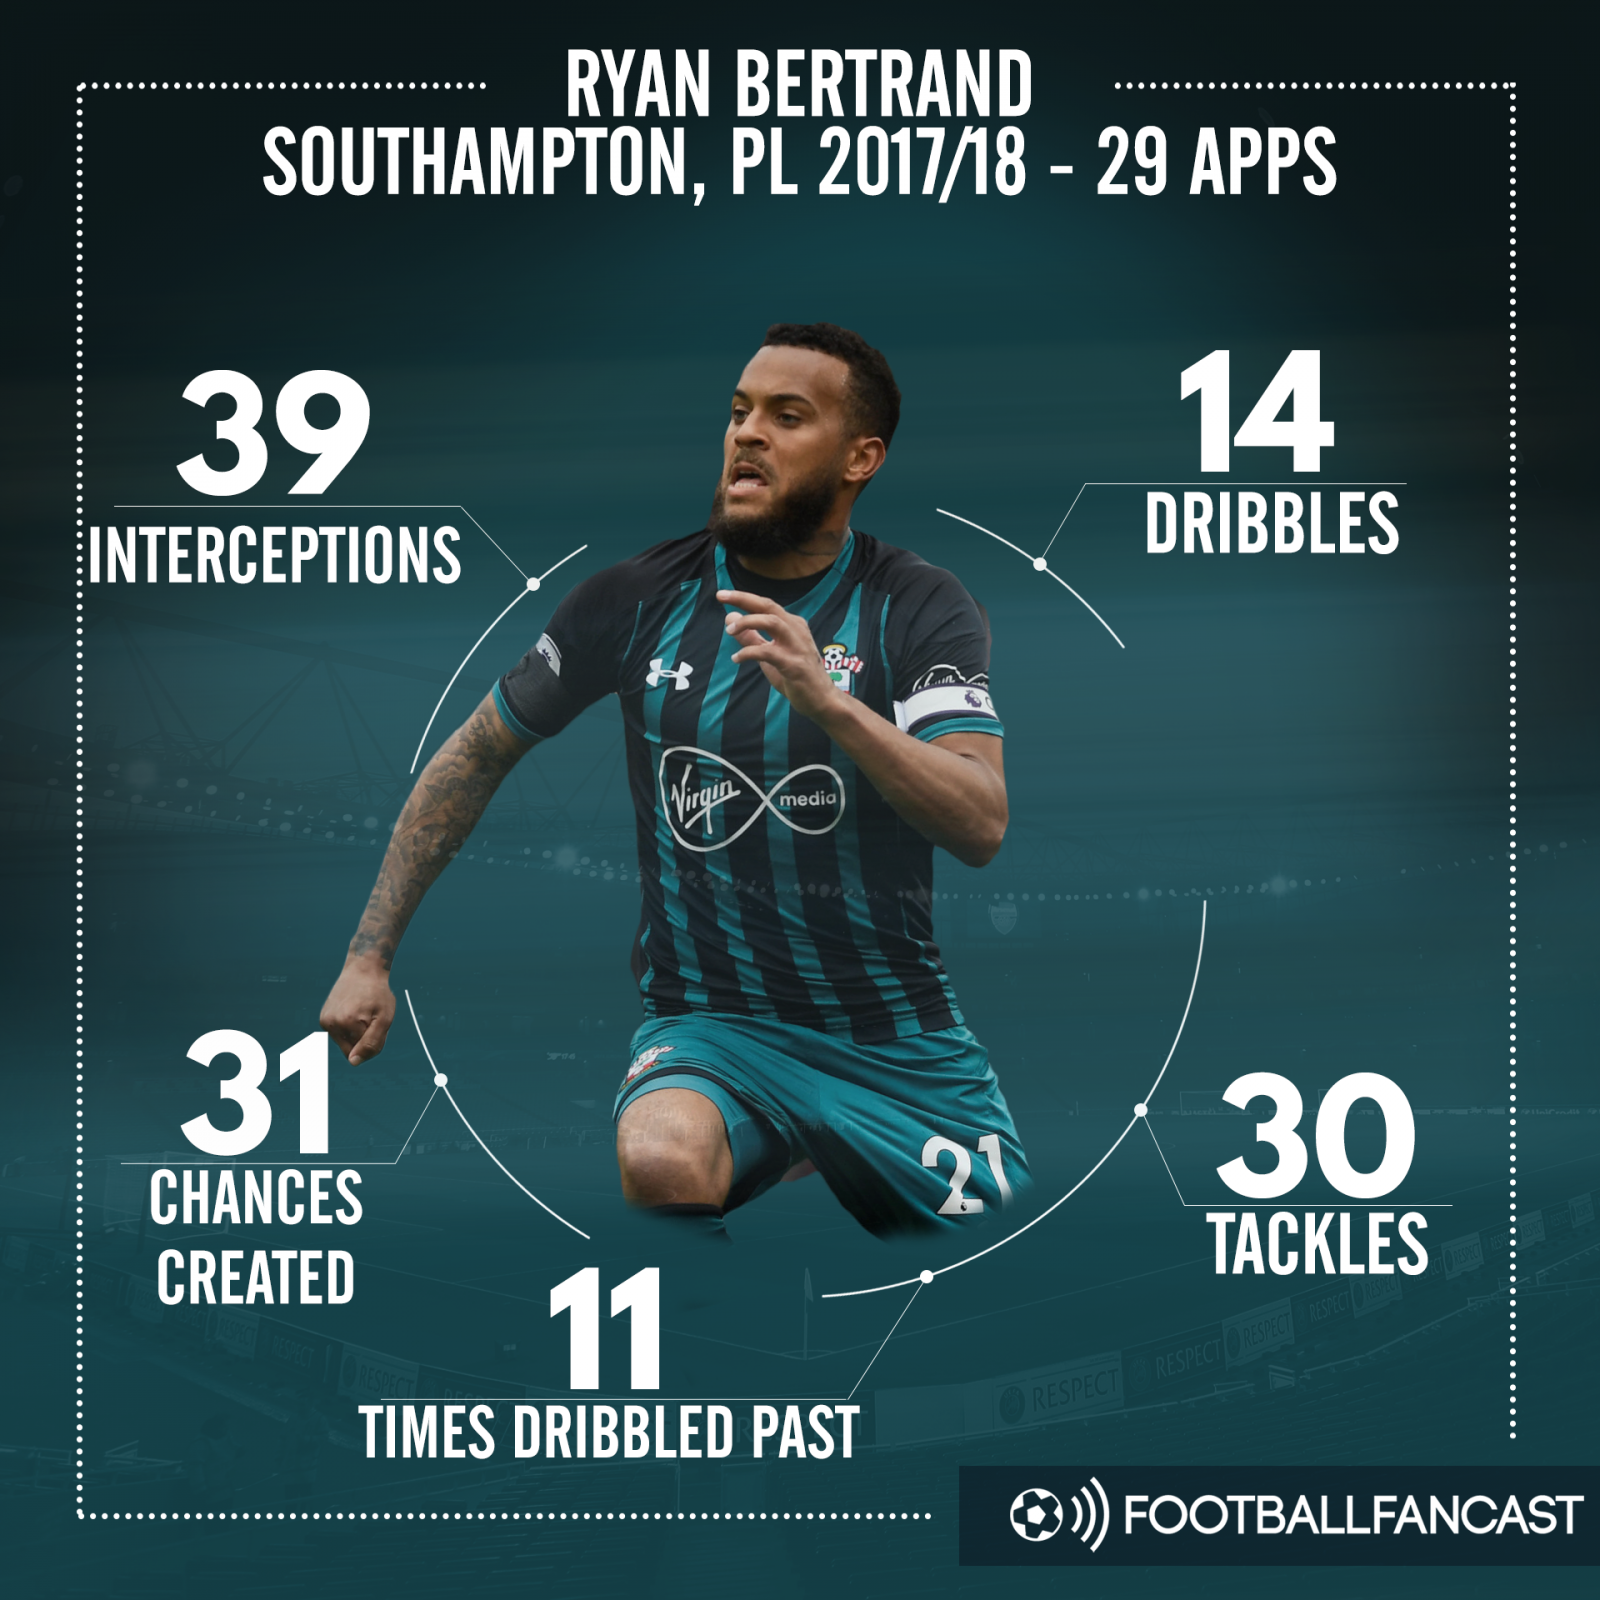 Bertrand stats - 17/18 season